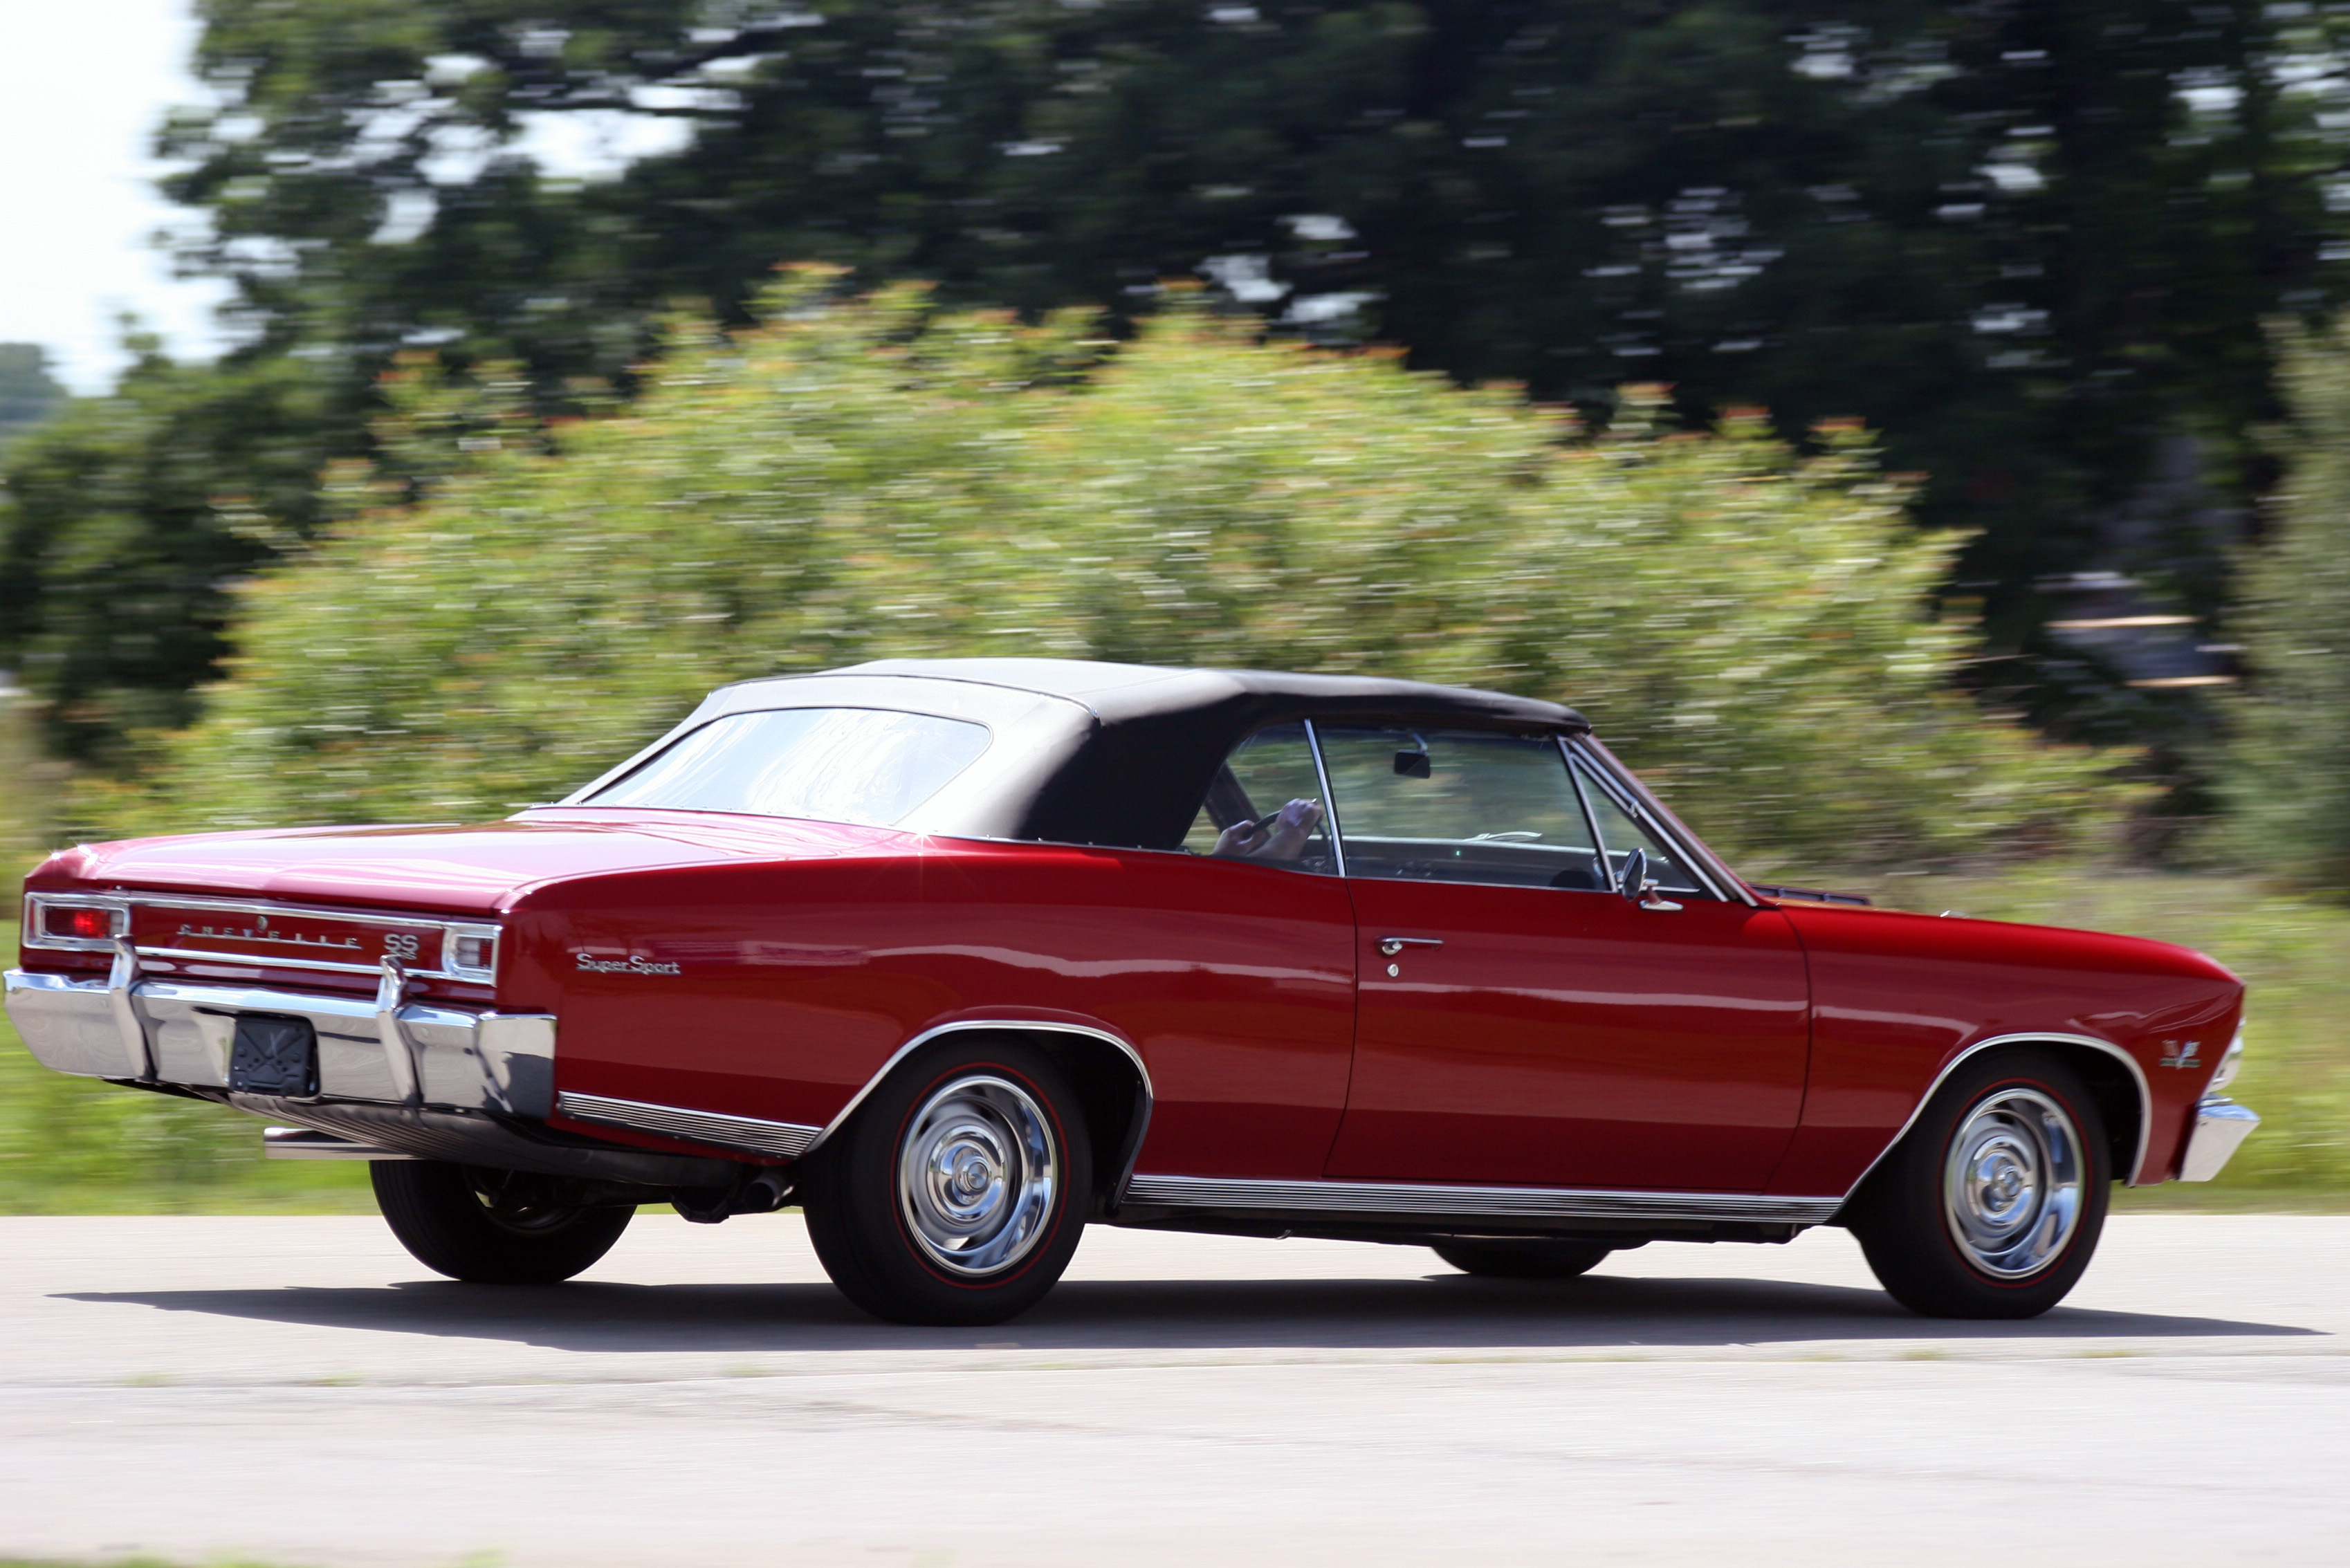 1966 CHEVELLE SS CONVERTIBLE HD Wallpaper | Background Image